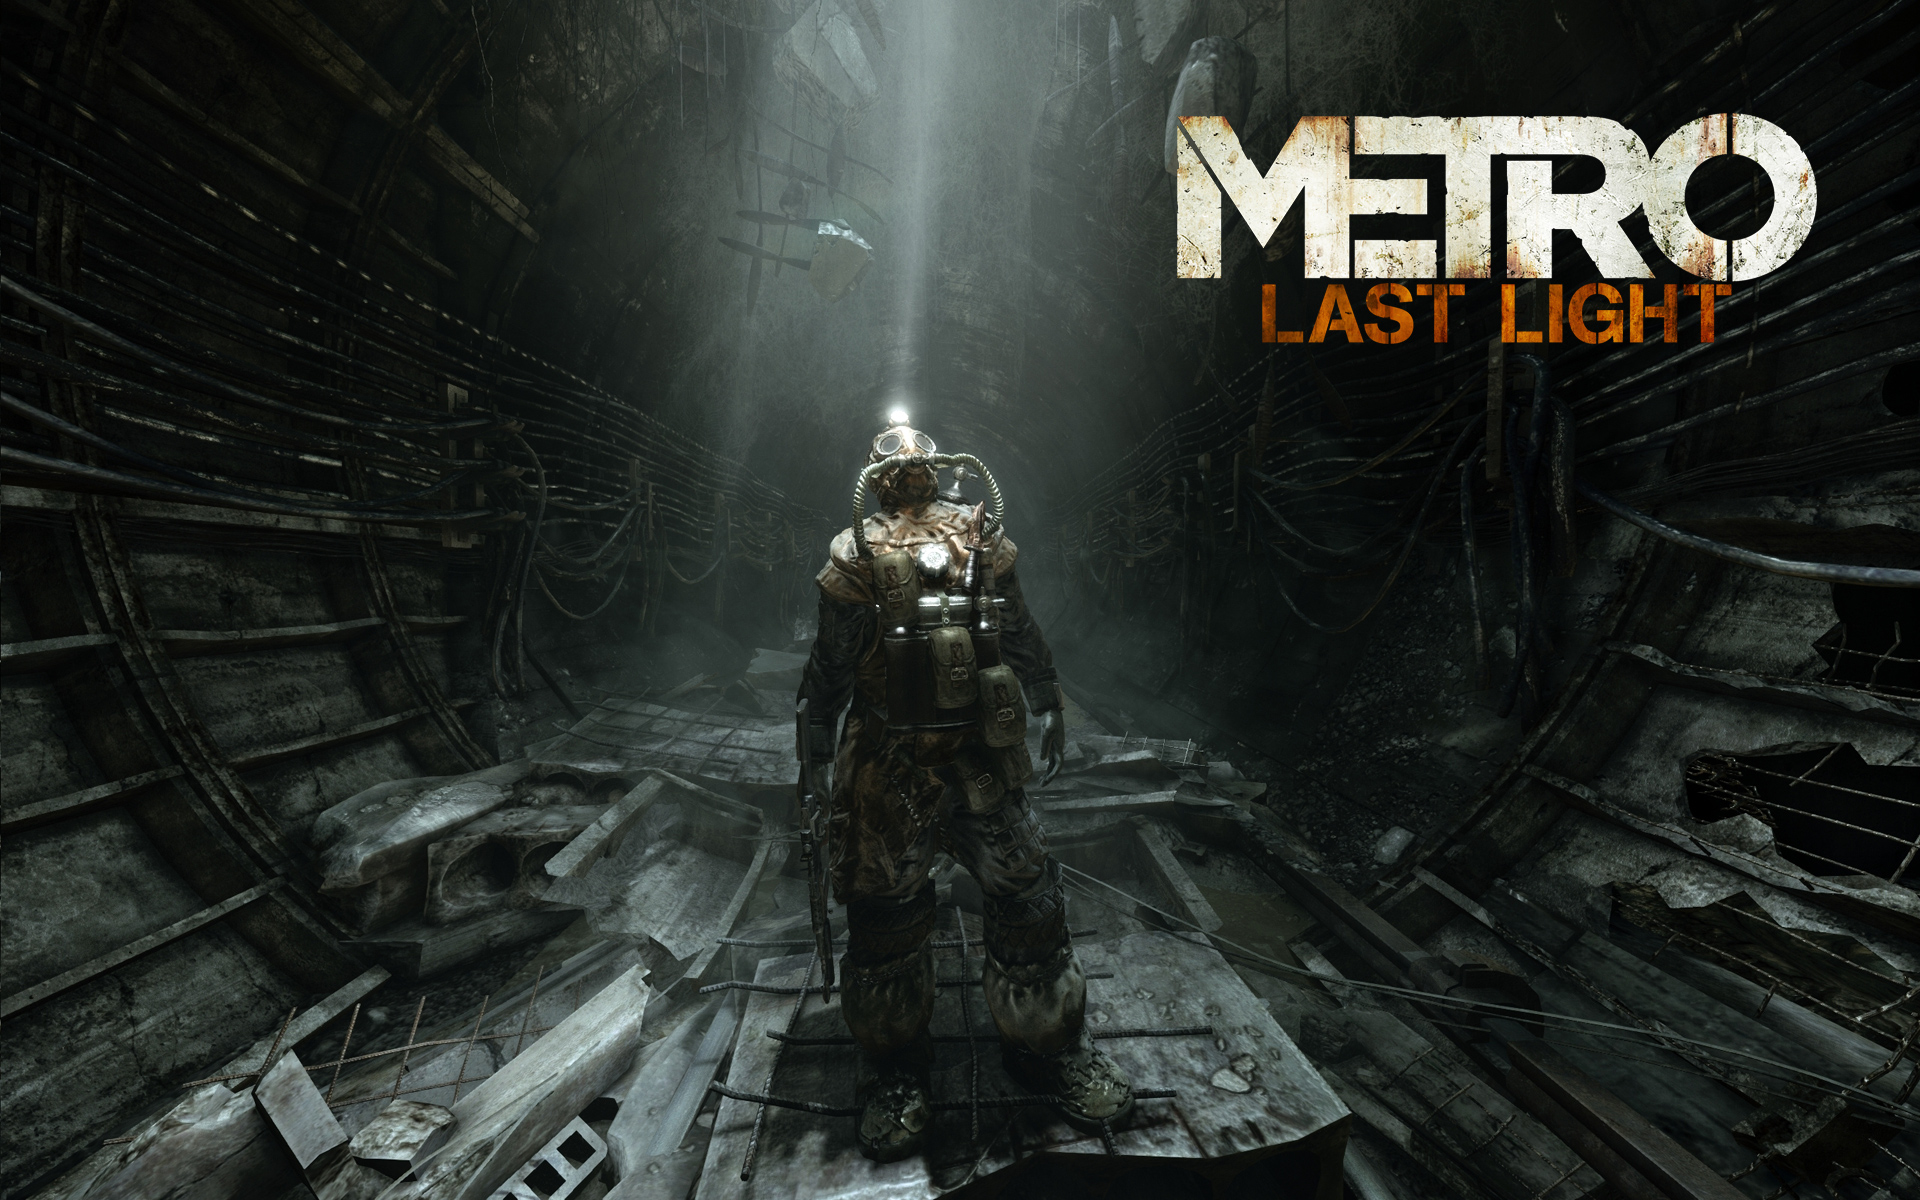 Metro Last Light PC Game Free Download 7.6GB